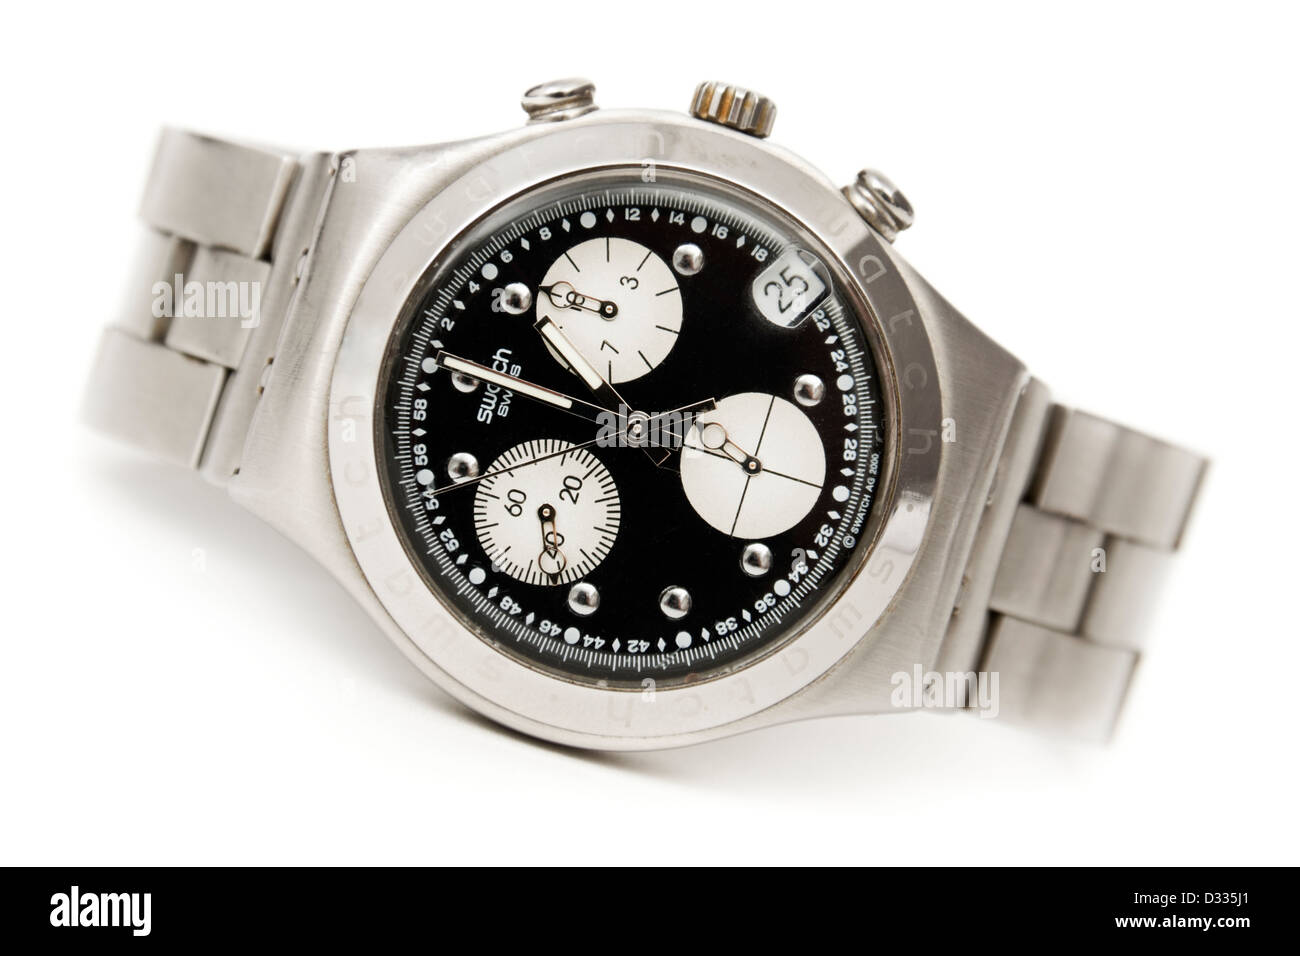 Rare Swatch Irony stainless steel watch from the millennium year collection (2000) - Stock Image